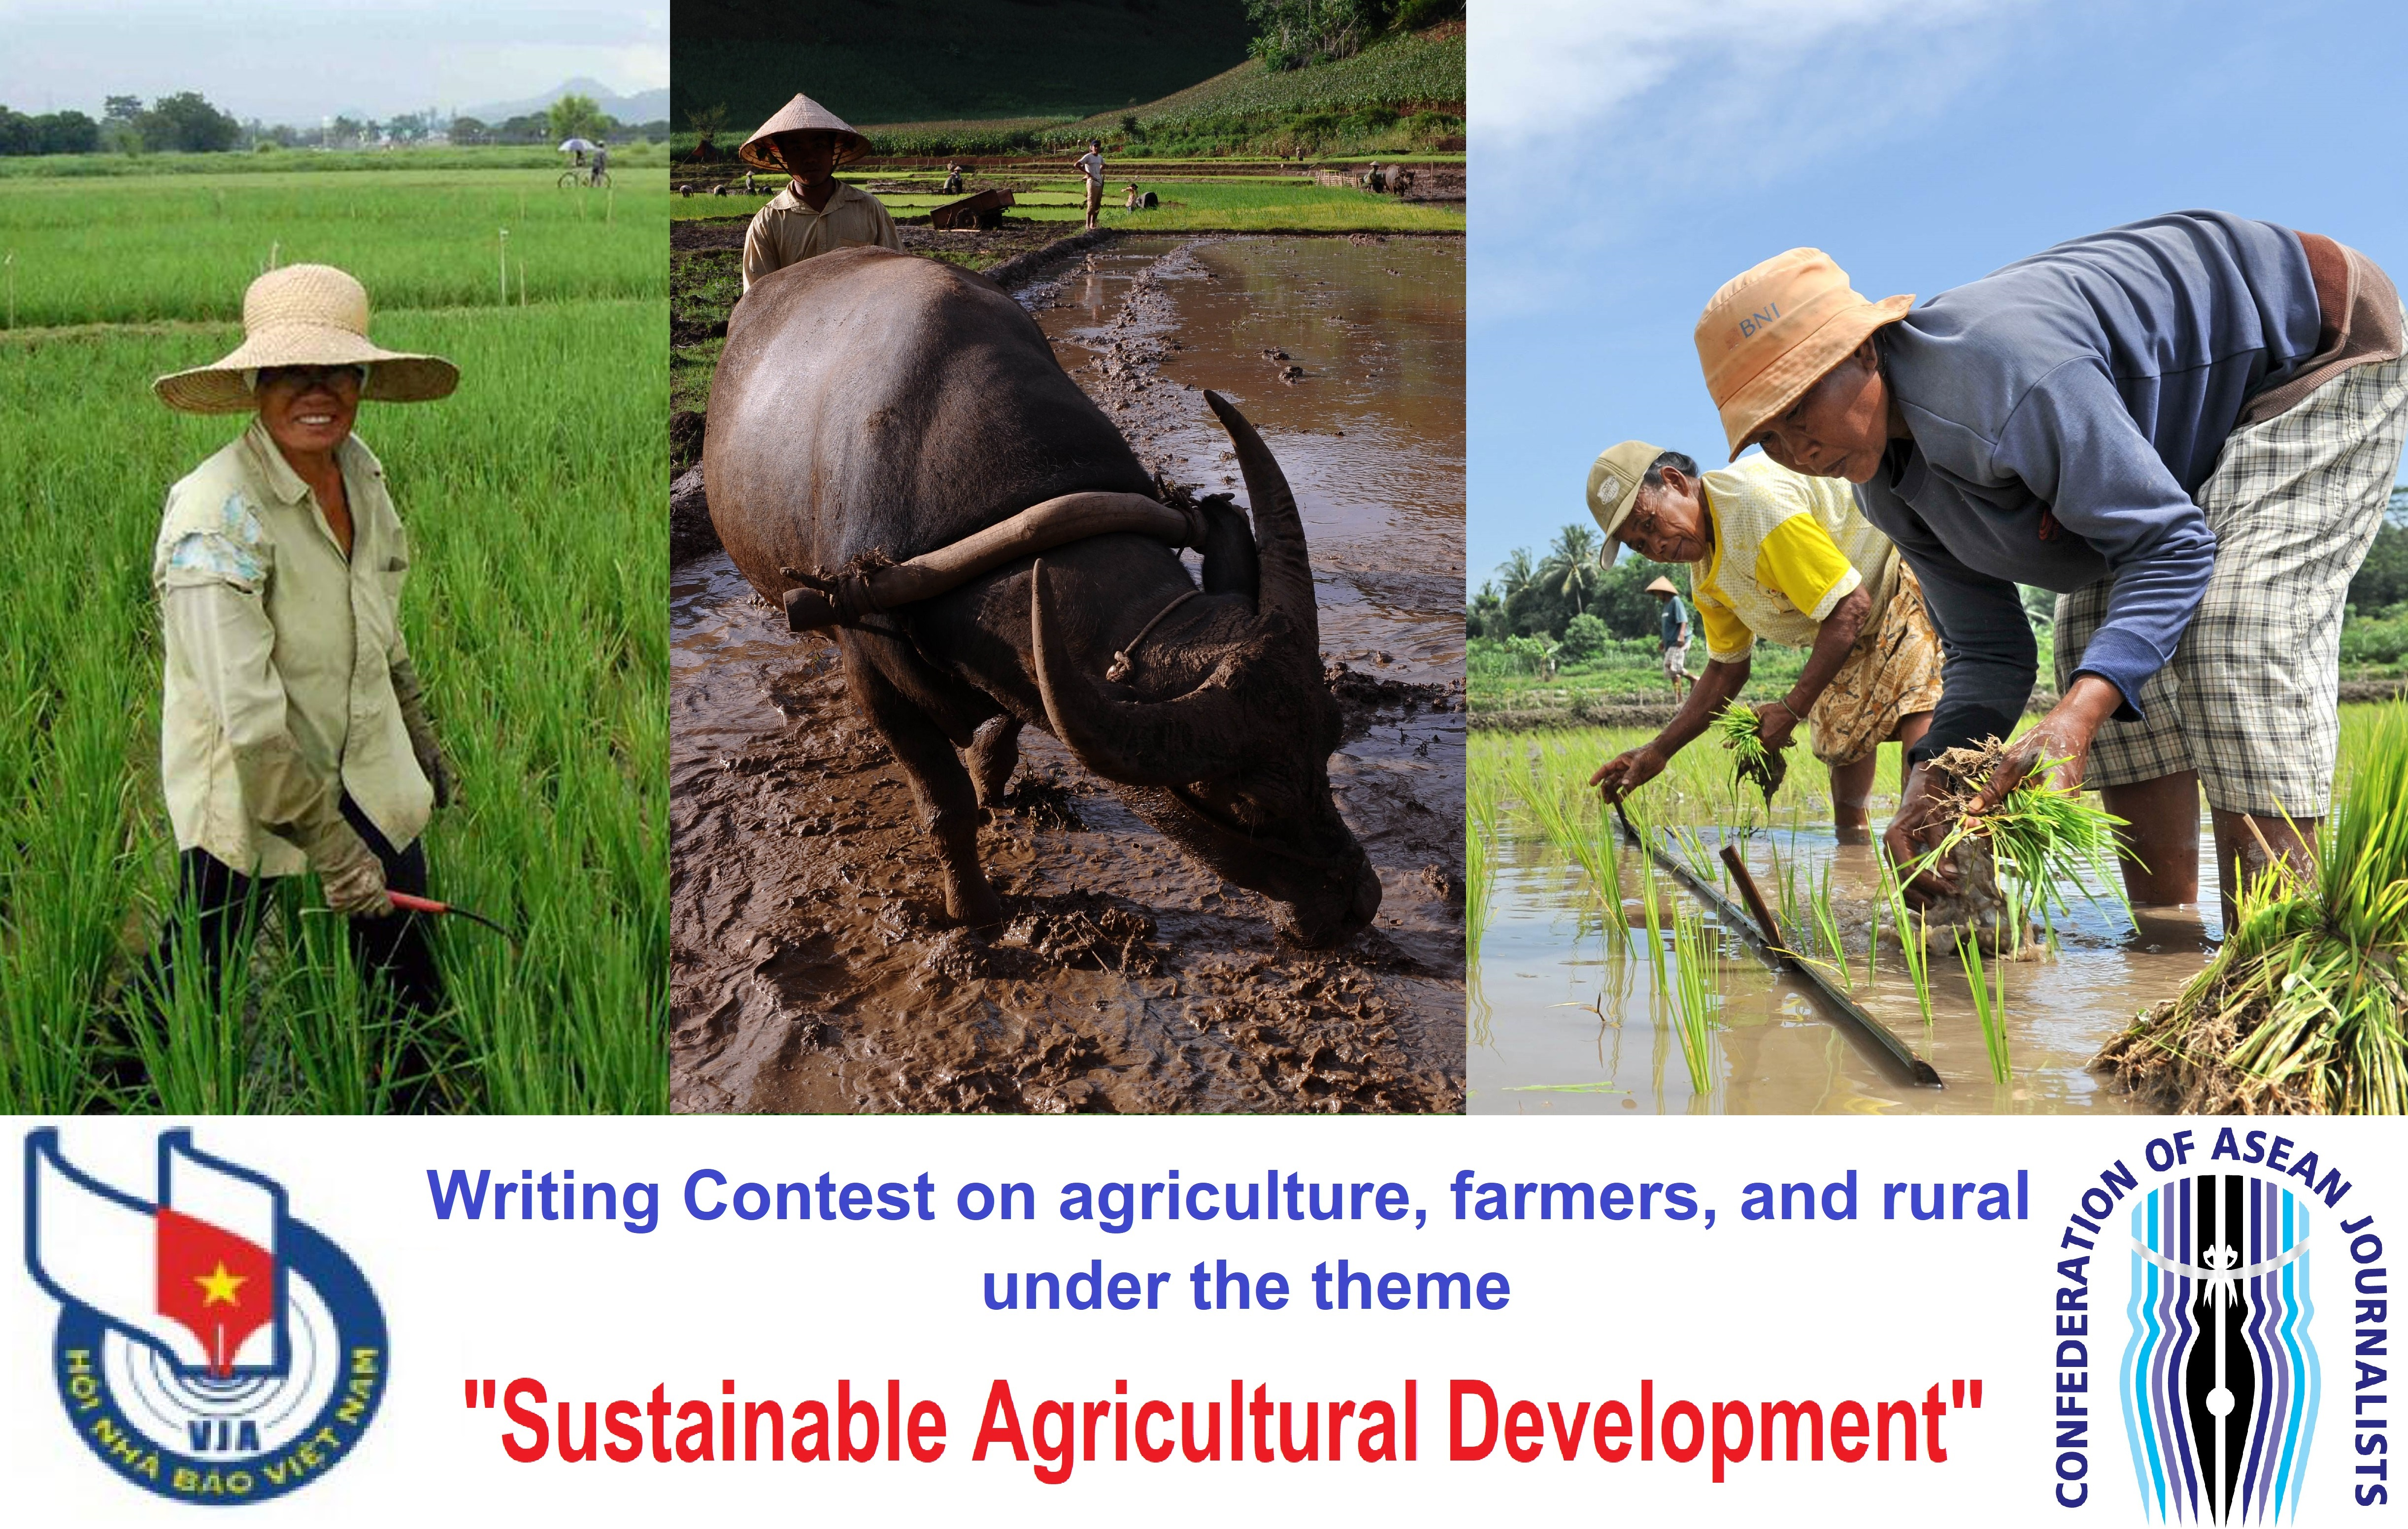 VJA announces Writing Contest on Sustainable Agricultural Development